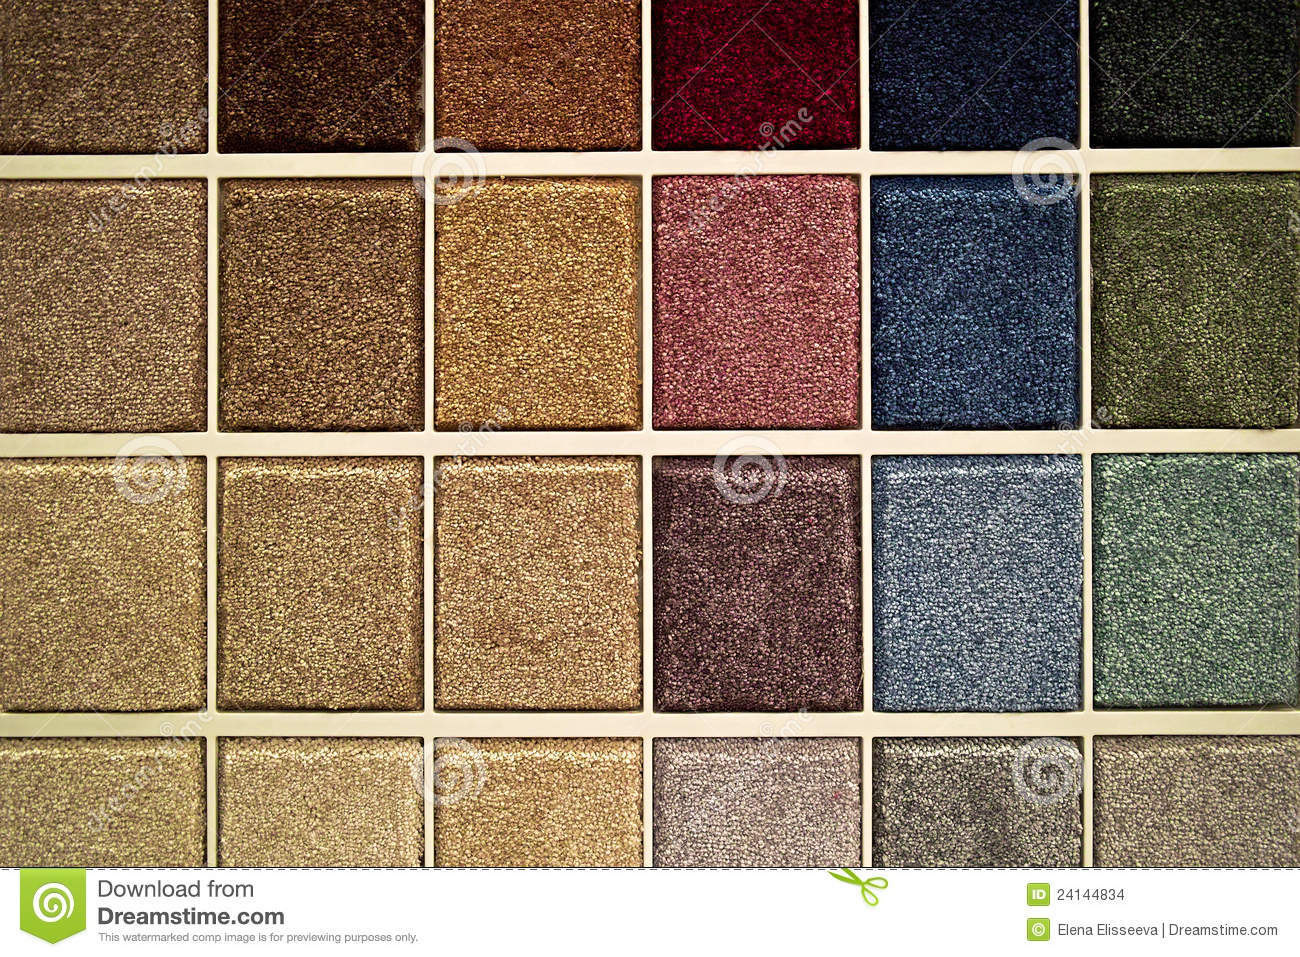 Stock Images Carpet S les Image24144834 on floor plan for master bathroom